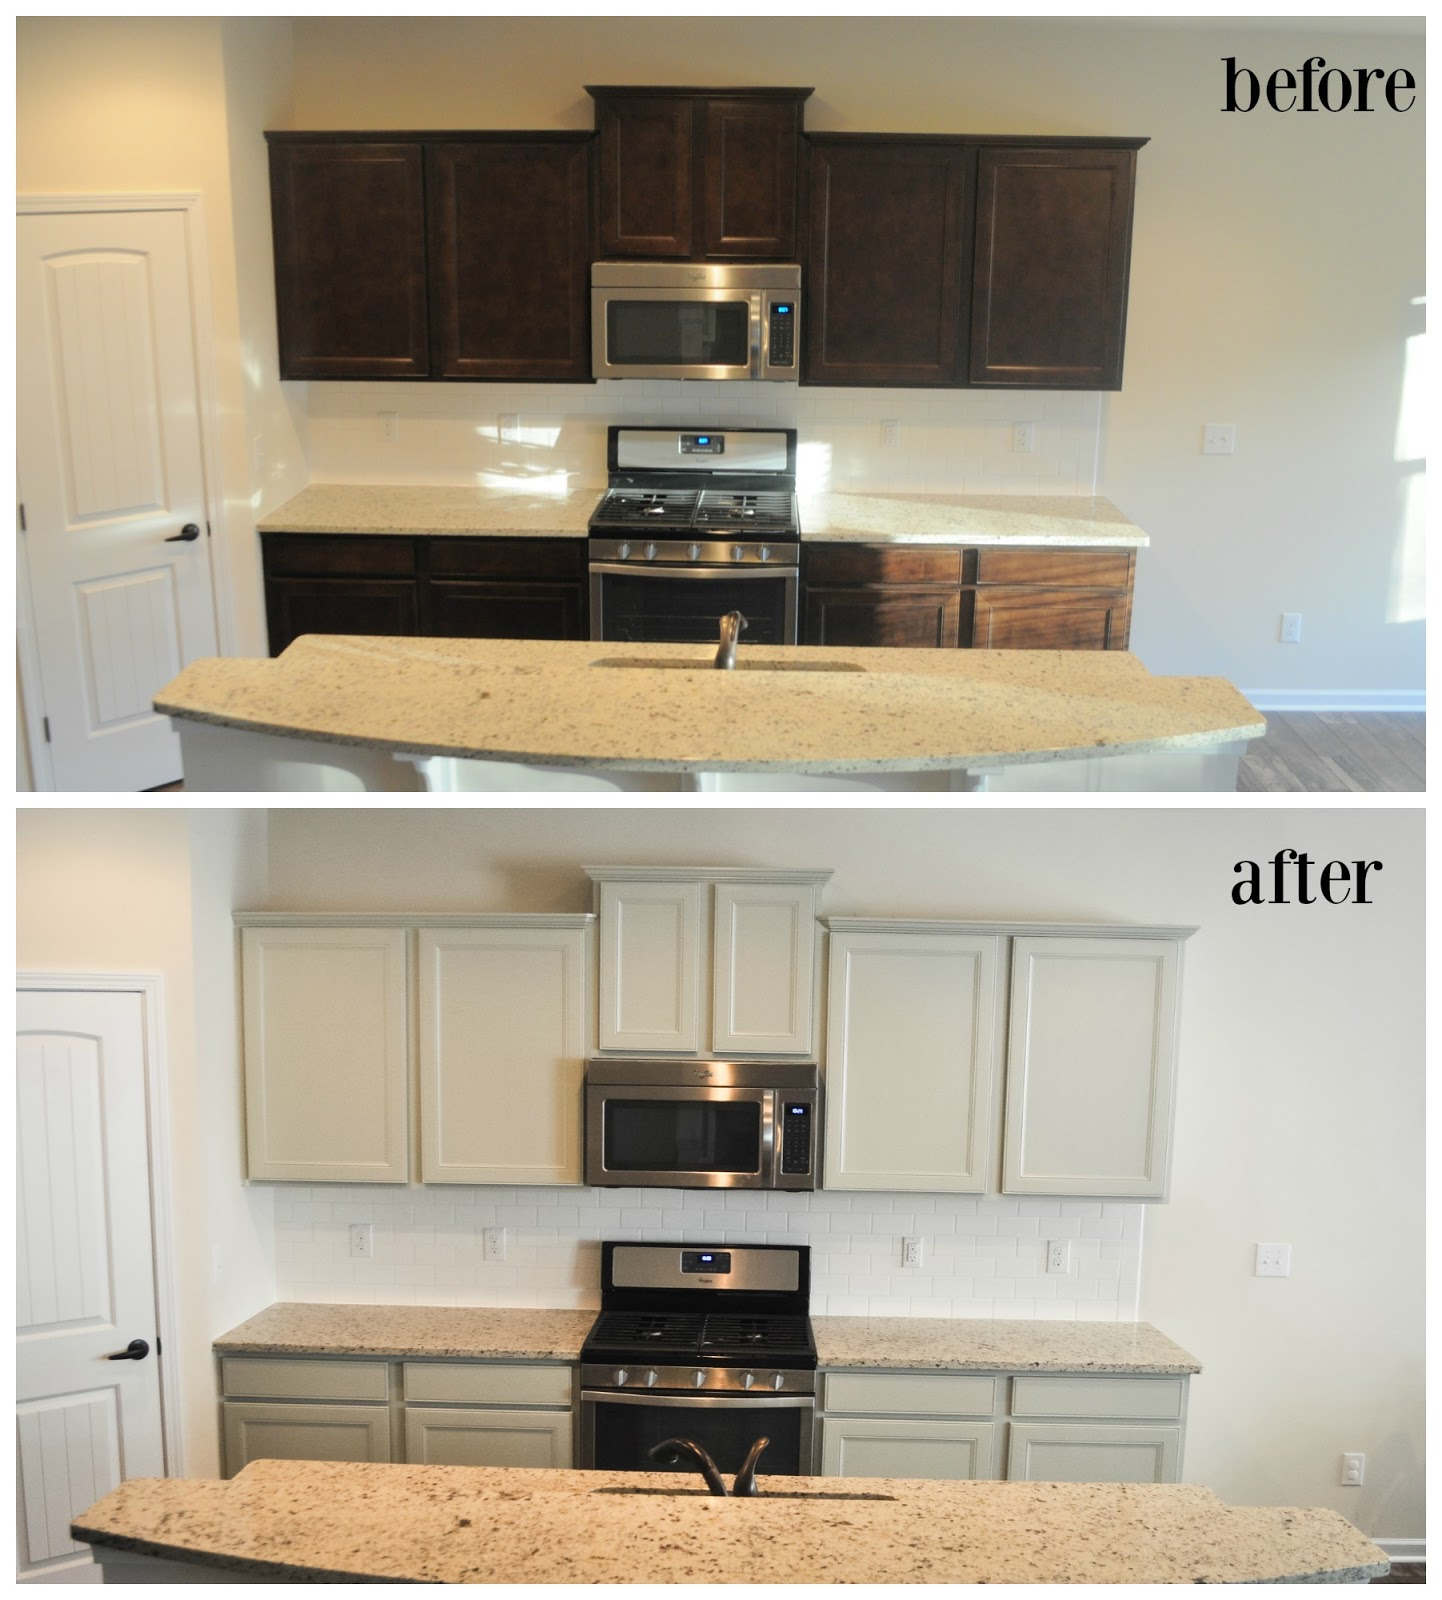 New Kitchen Cabinets We Painted Our Brand New Kitchen Cabinets And Here 39s How